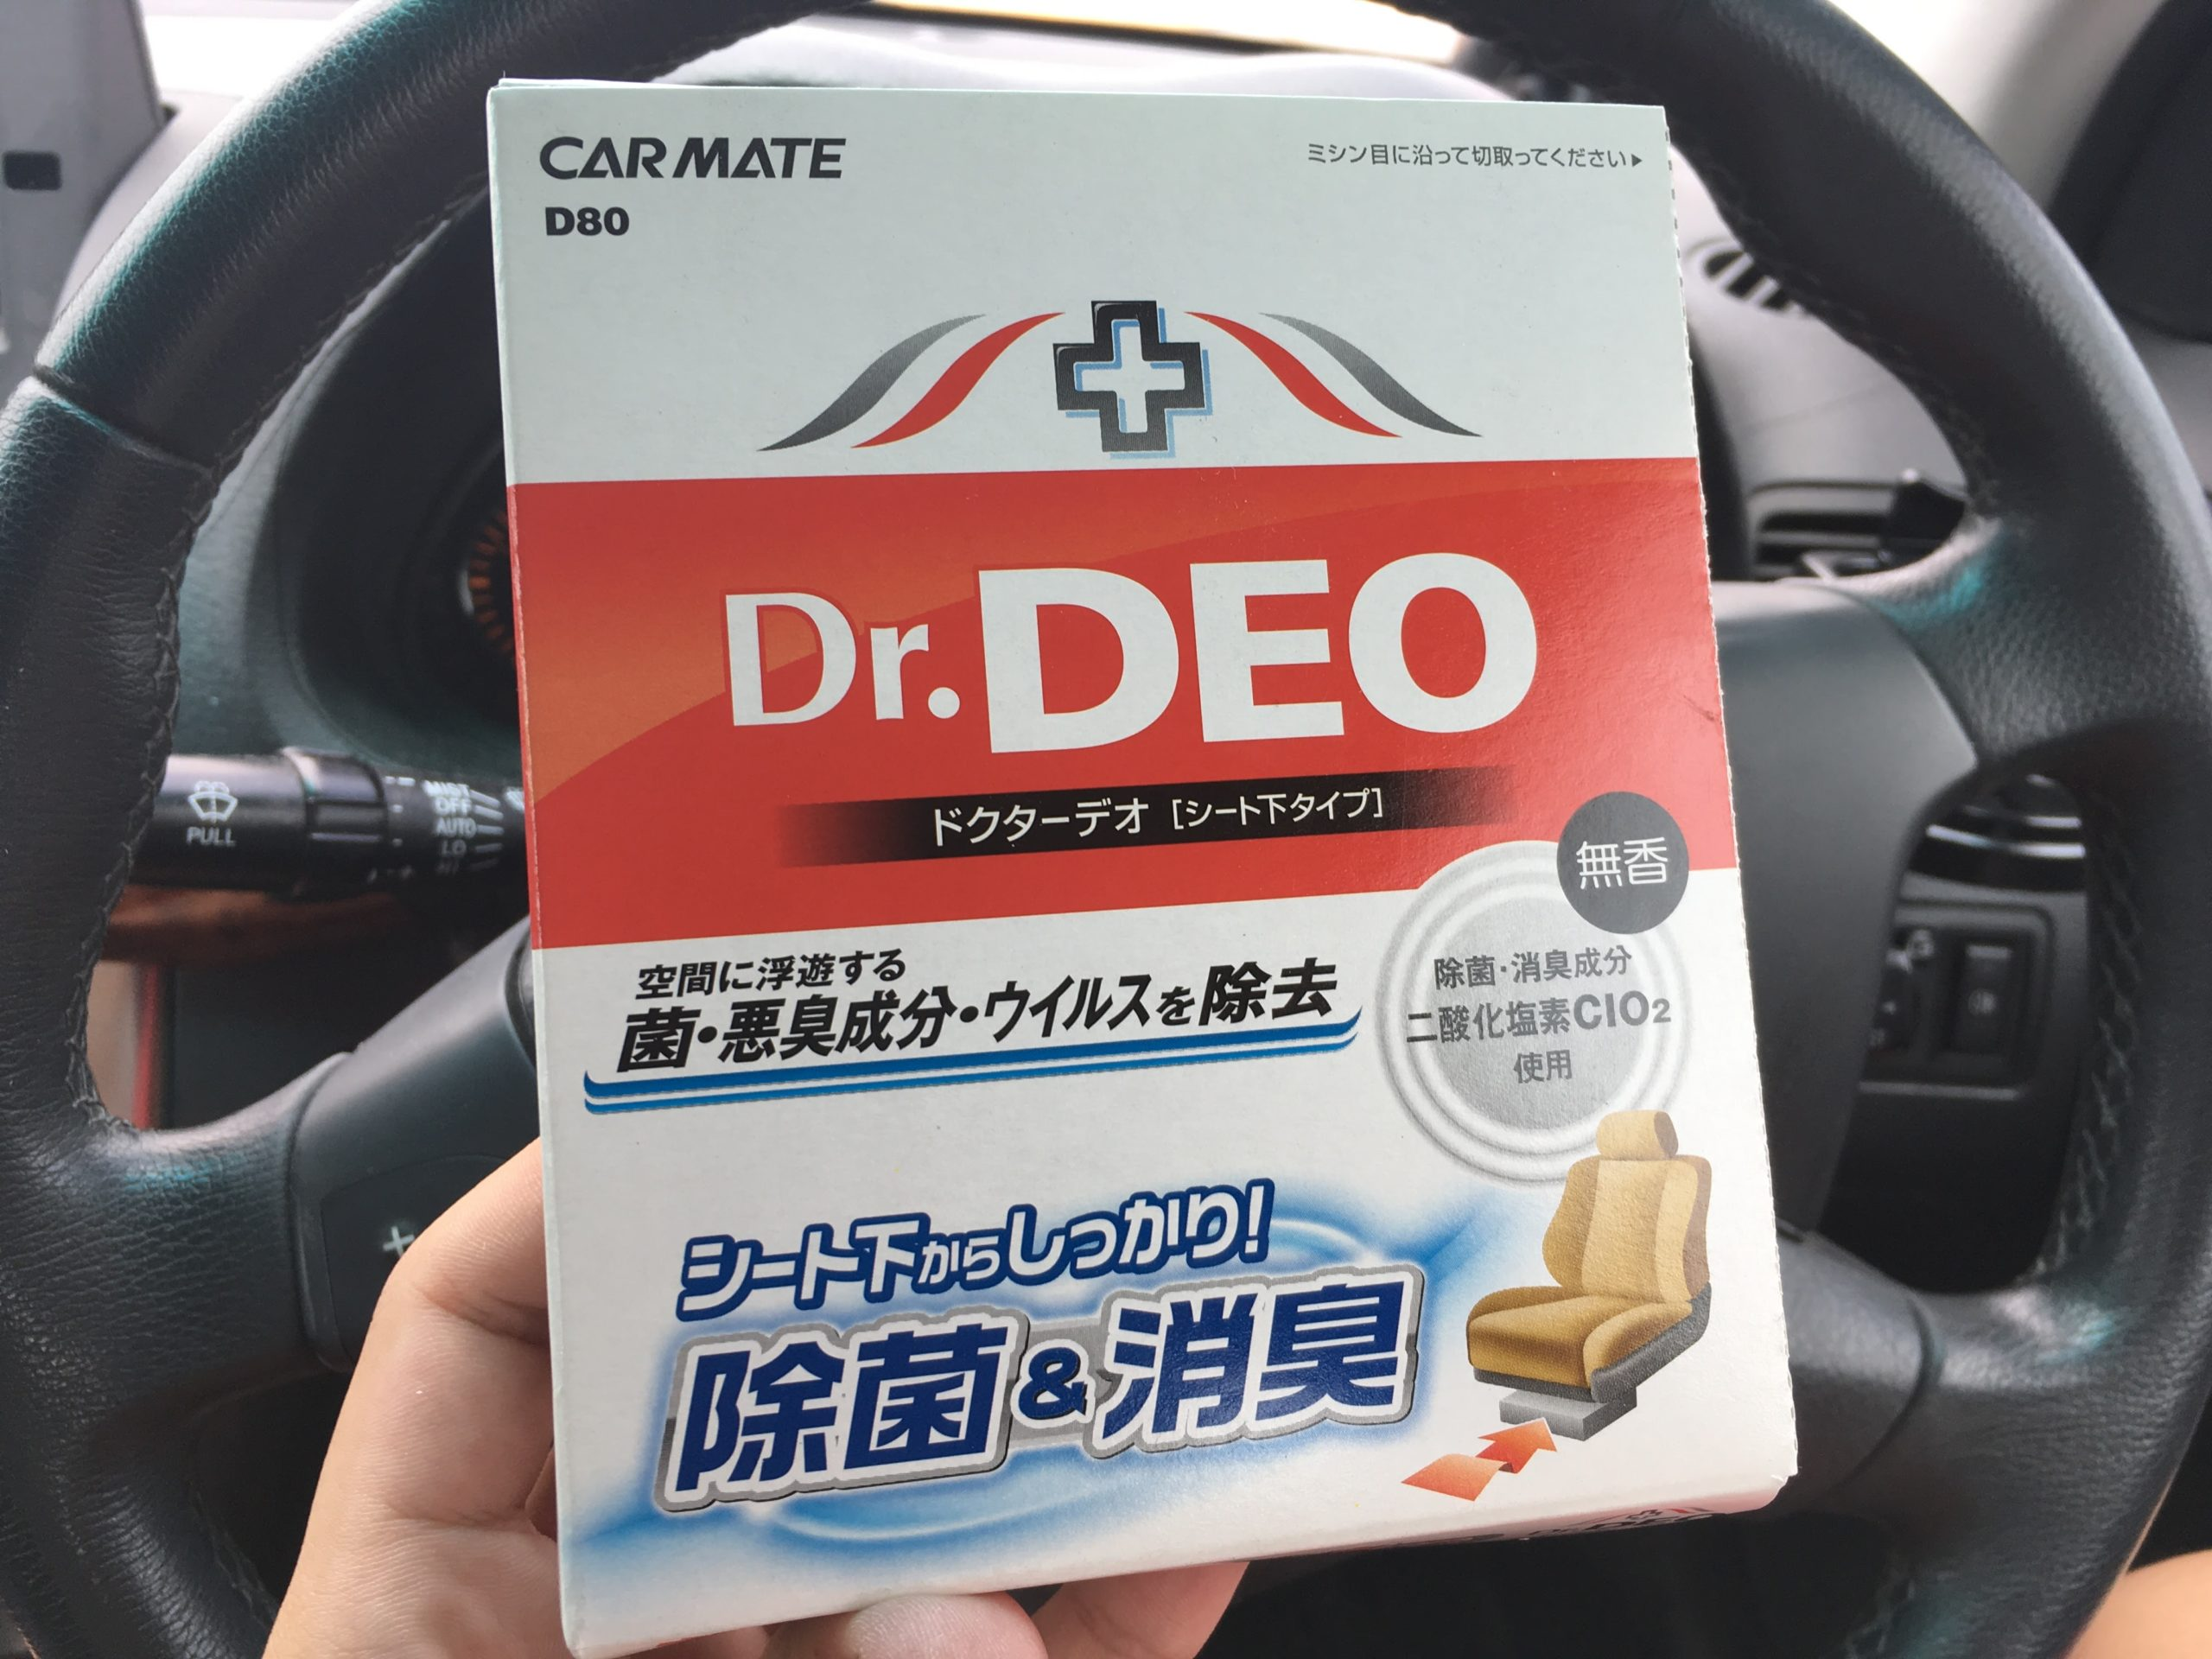 Dr.DEO